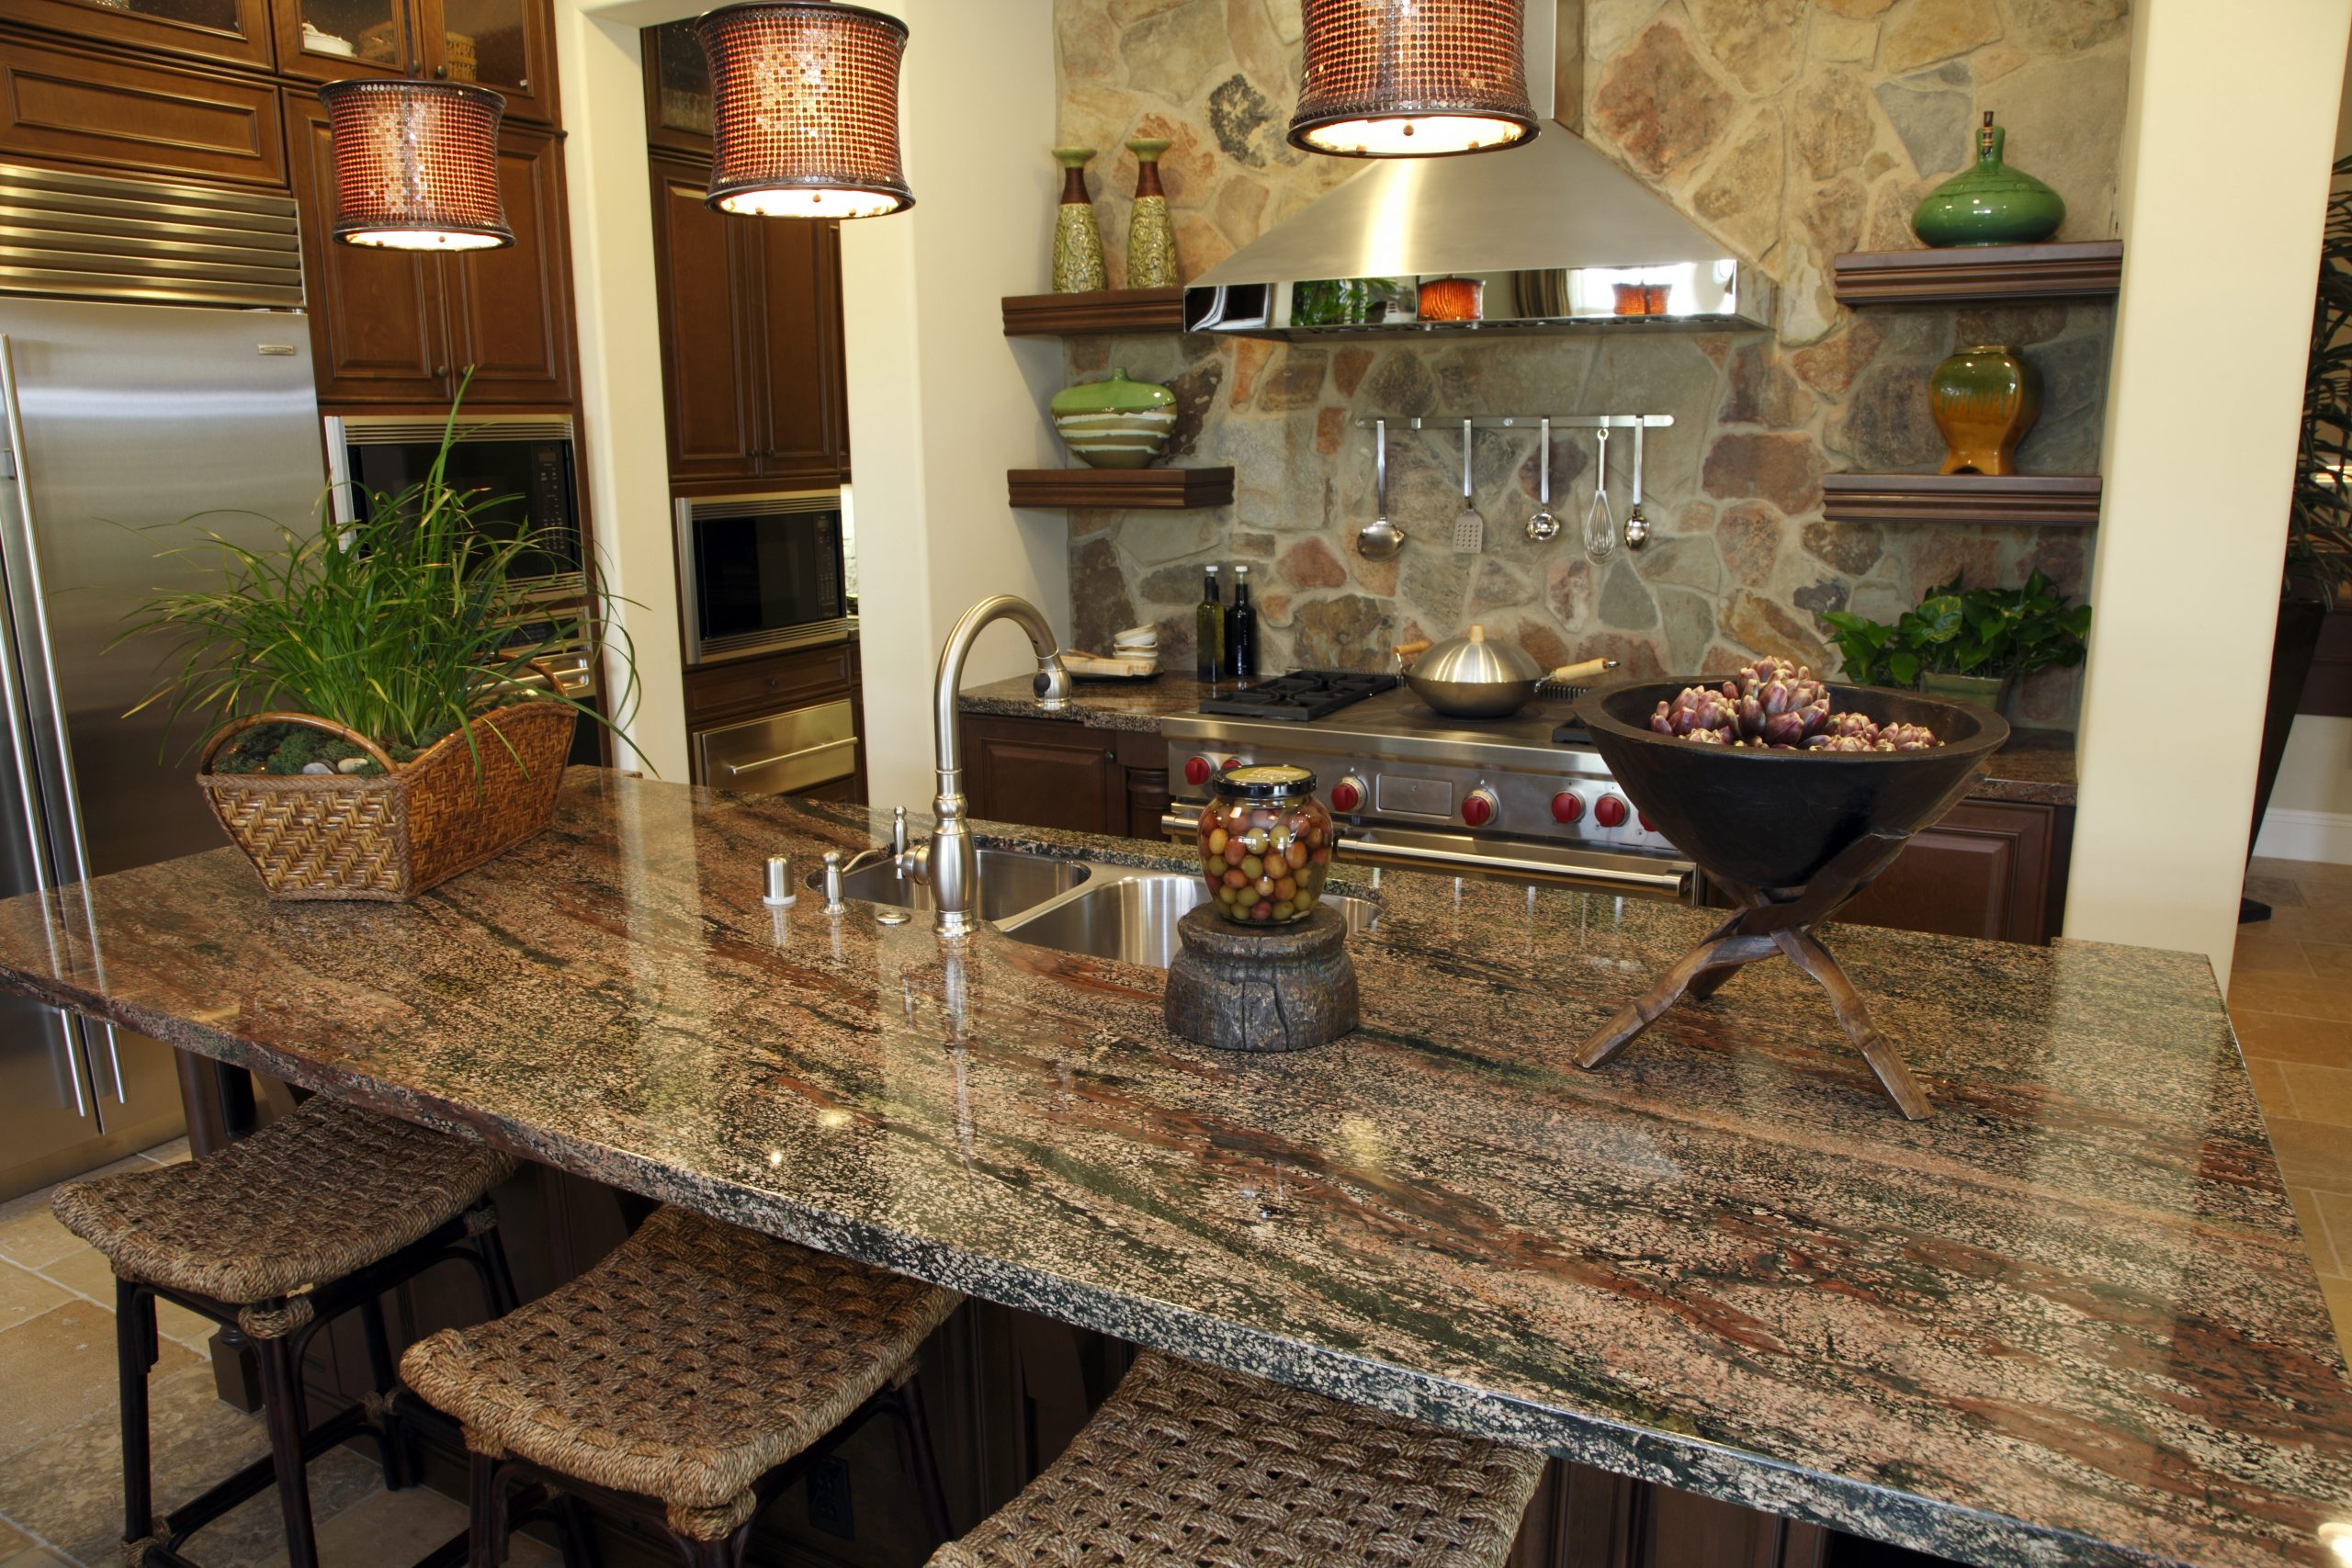 How Much Does Granite Cost In The UK?